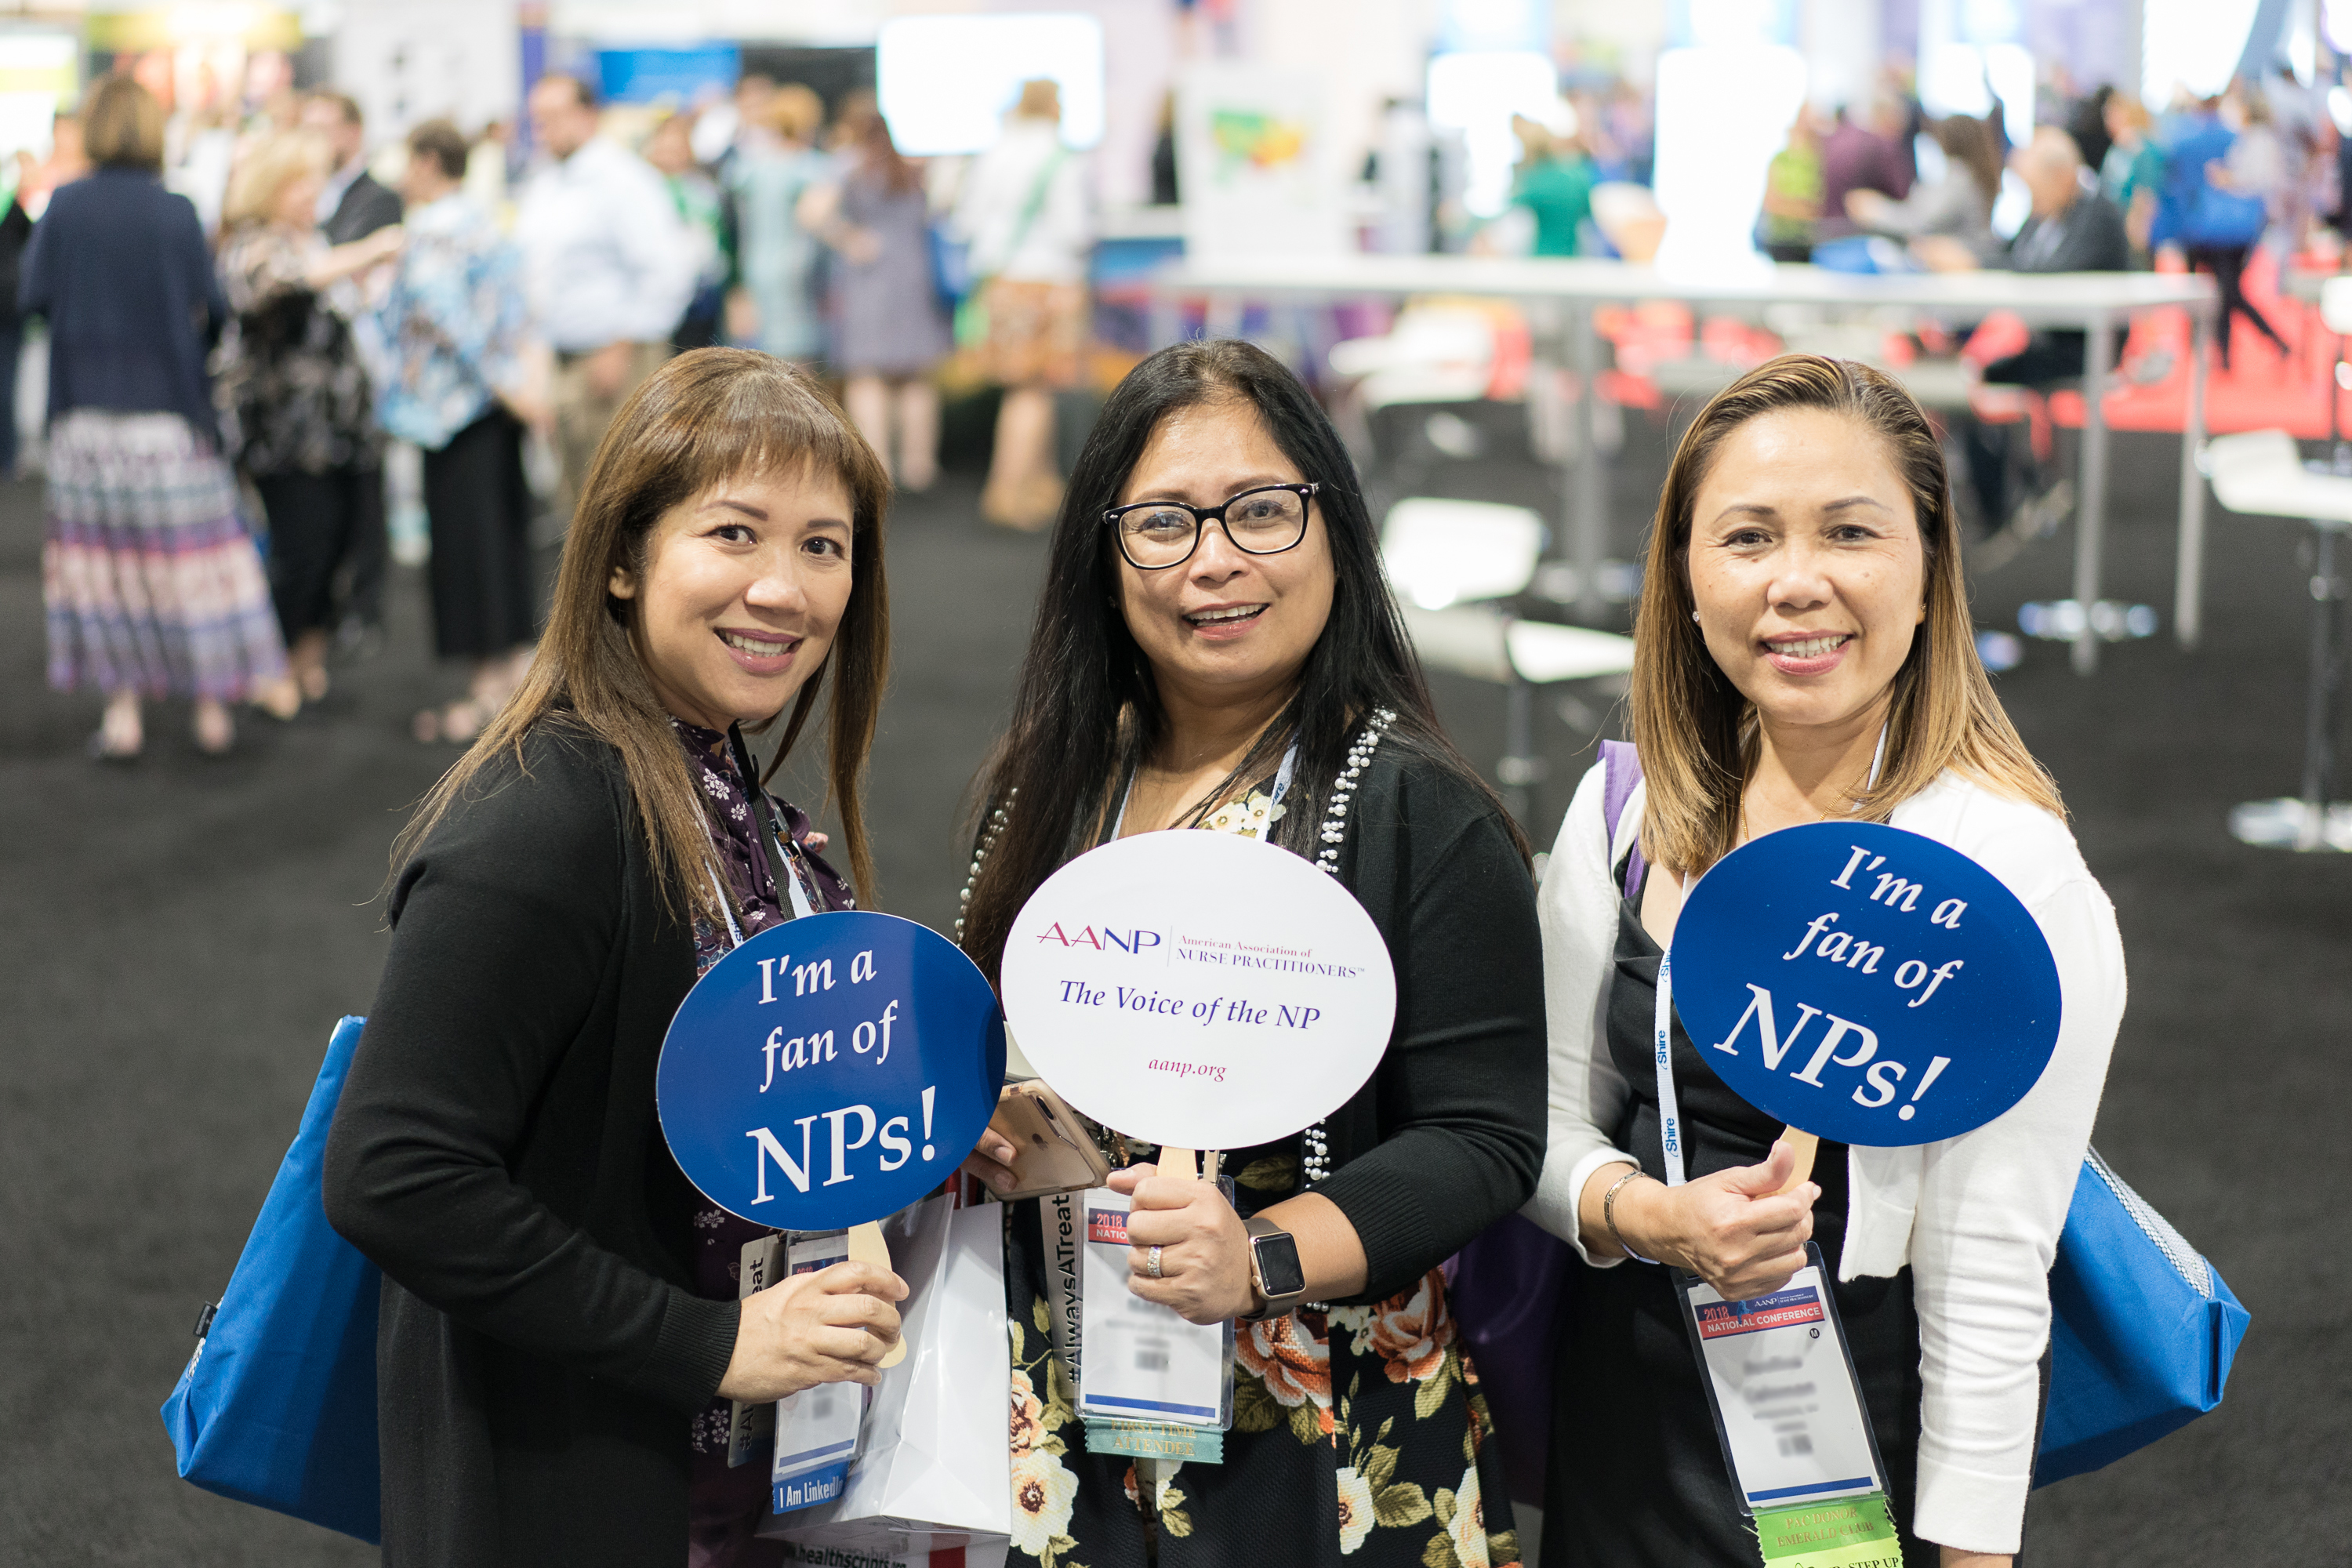 American Association of Nurse Practitioners Believe in the NP role